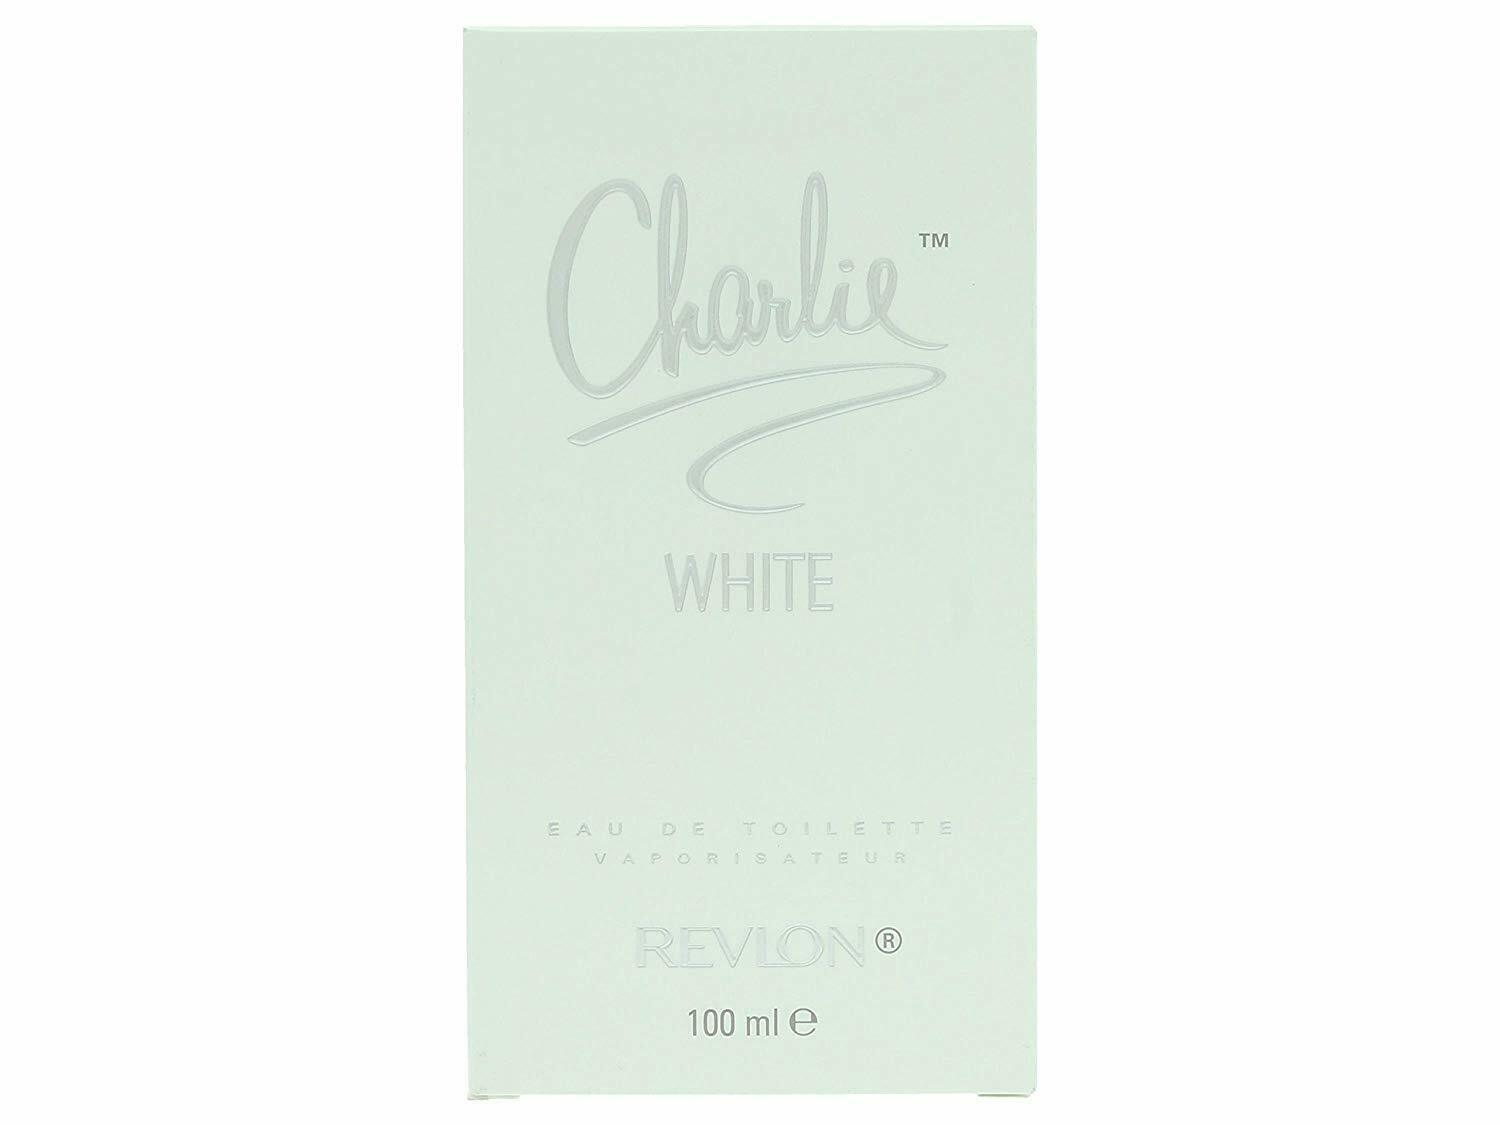 Revlon Charlie White Perfume for Women -Recommended use: Daytime-Free Shipping image 3